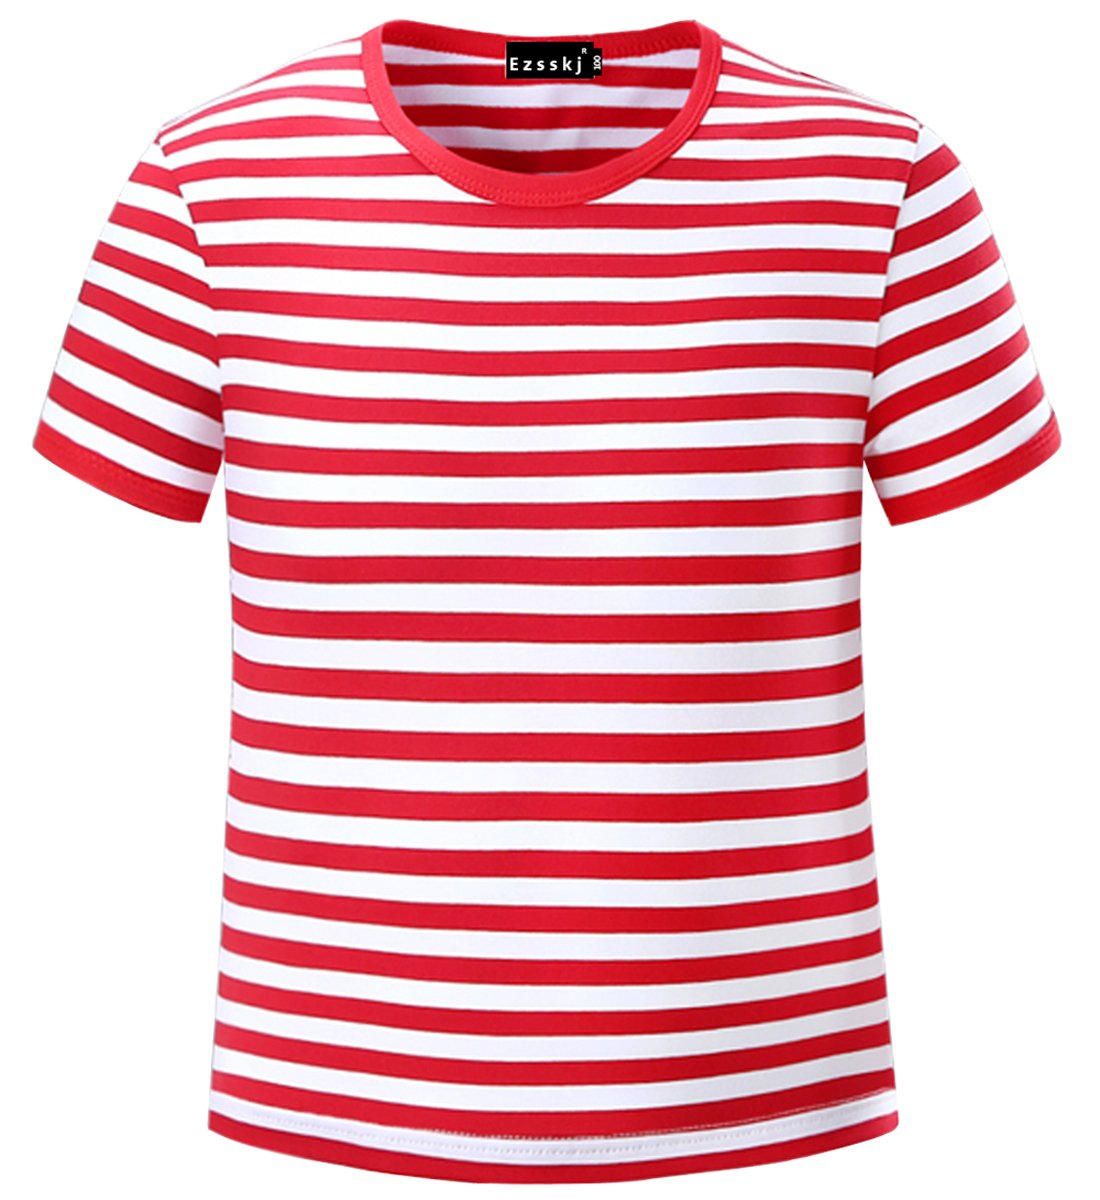 Ezsskj Kids Boys Children's Toddler Striped T Shirts Short Sleeve Crew Neck Stripes Tee MT0001